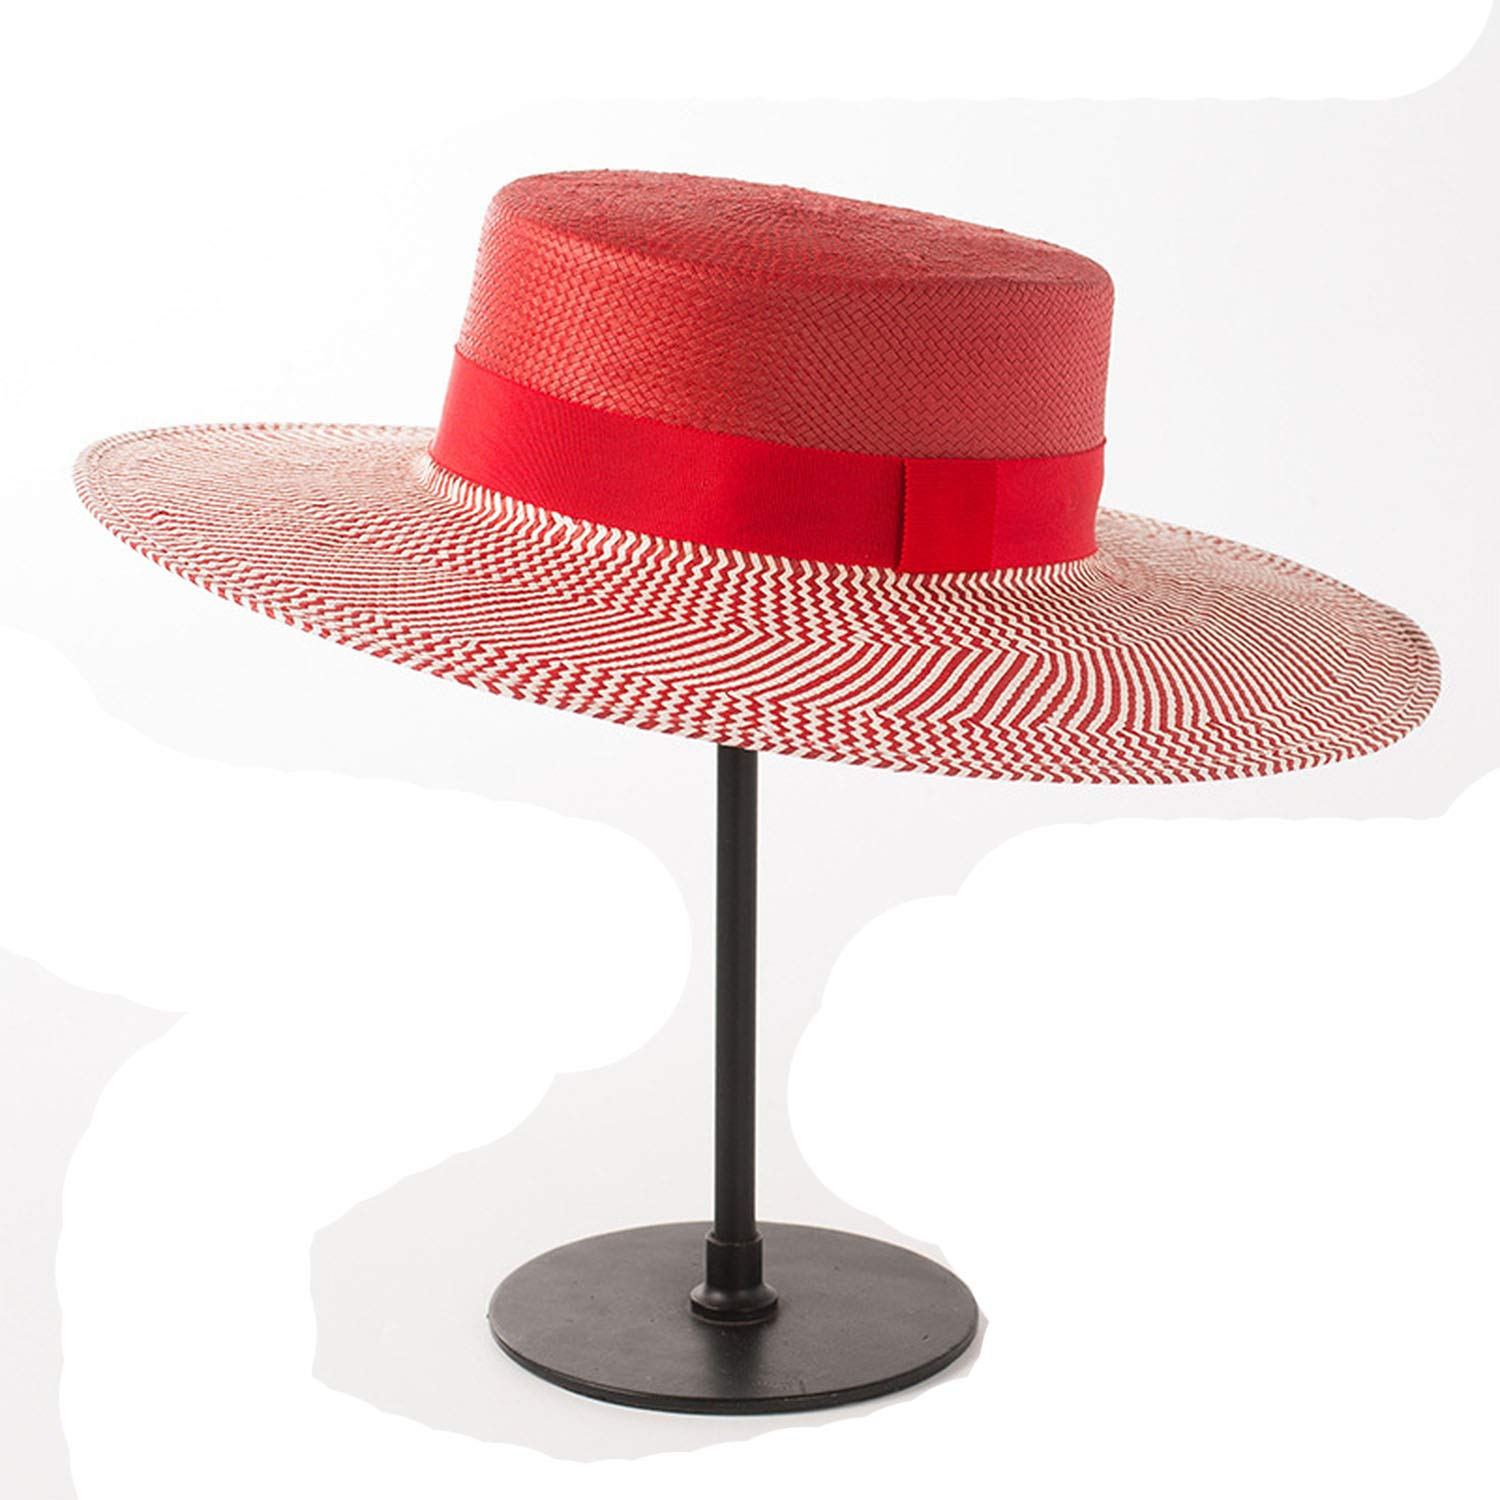 002 Red With Trim CHENTAI Sun Hats for Women Summer Beach Hats Paper Straw Hat for Ladies Boater Hat